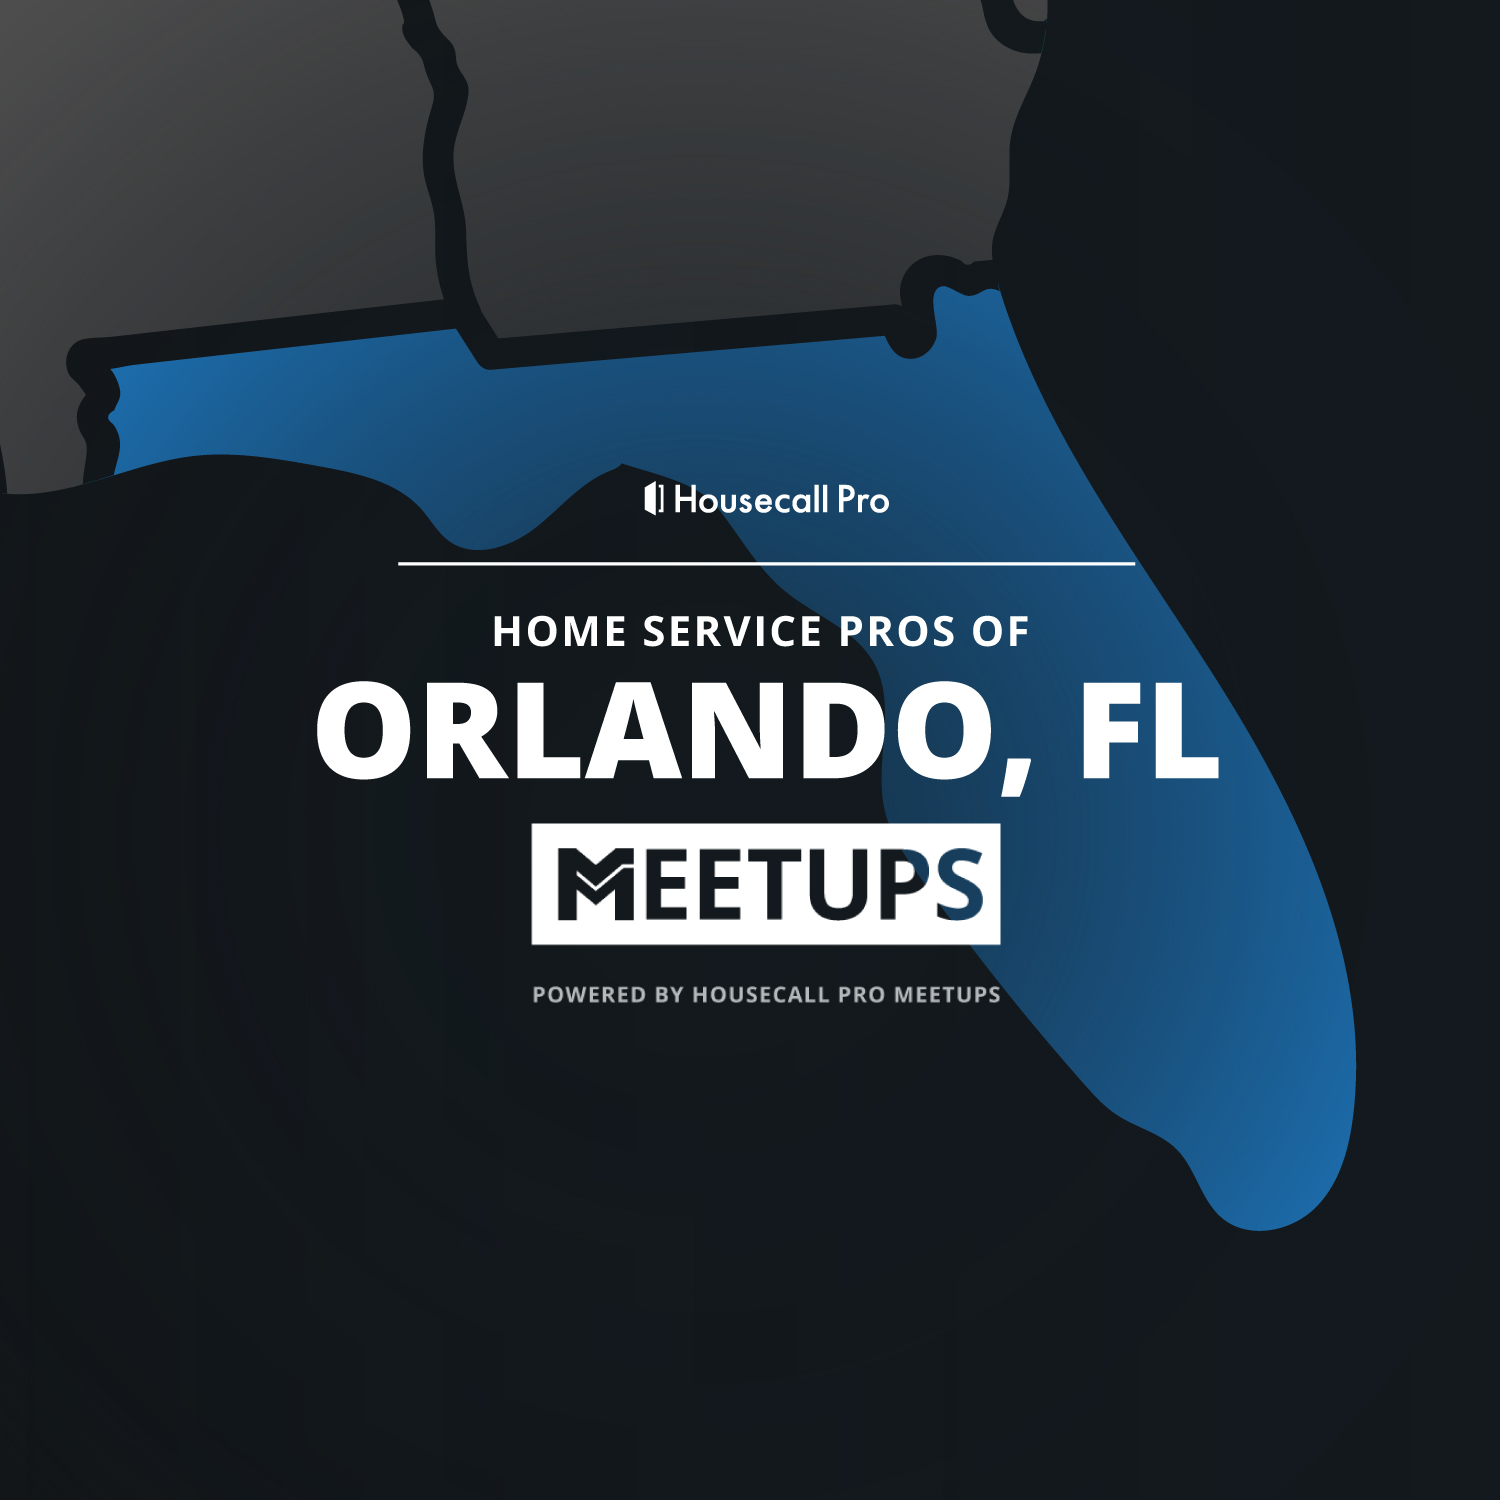 Orlando Facebook Group